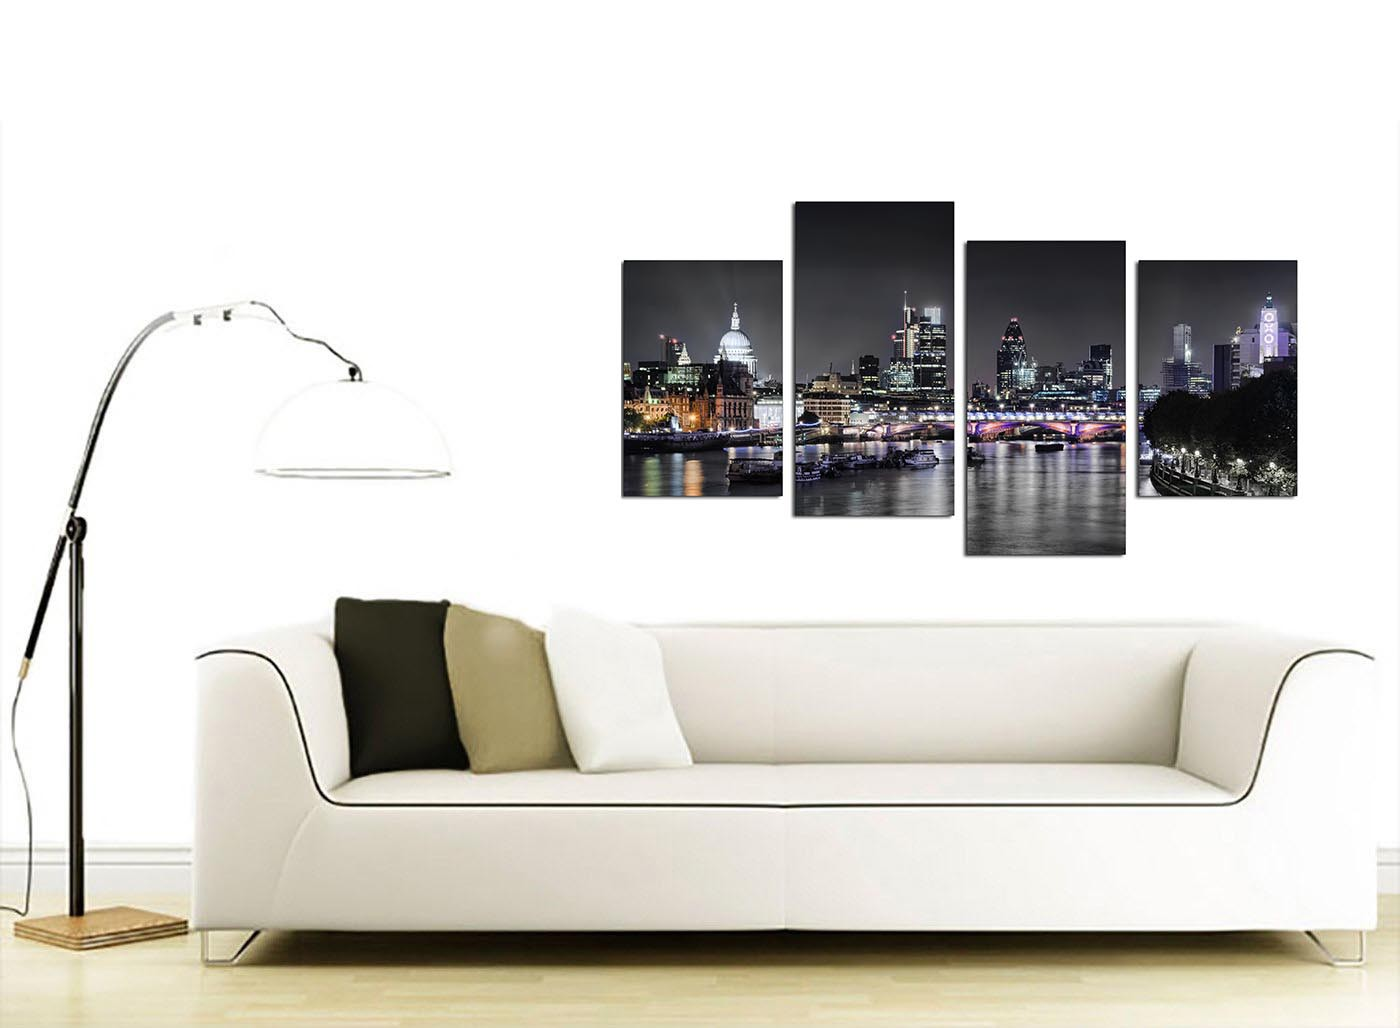 Art For The Living Room Canvas Wall Art Of London Skyline For Your Living Room 4